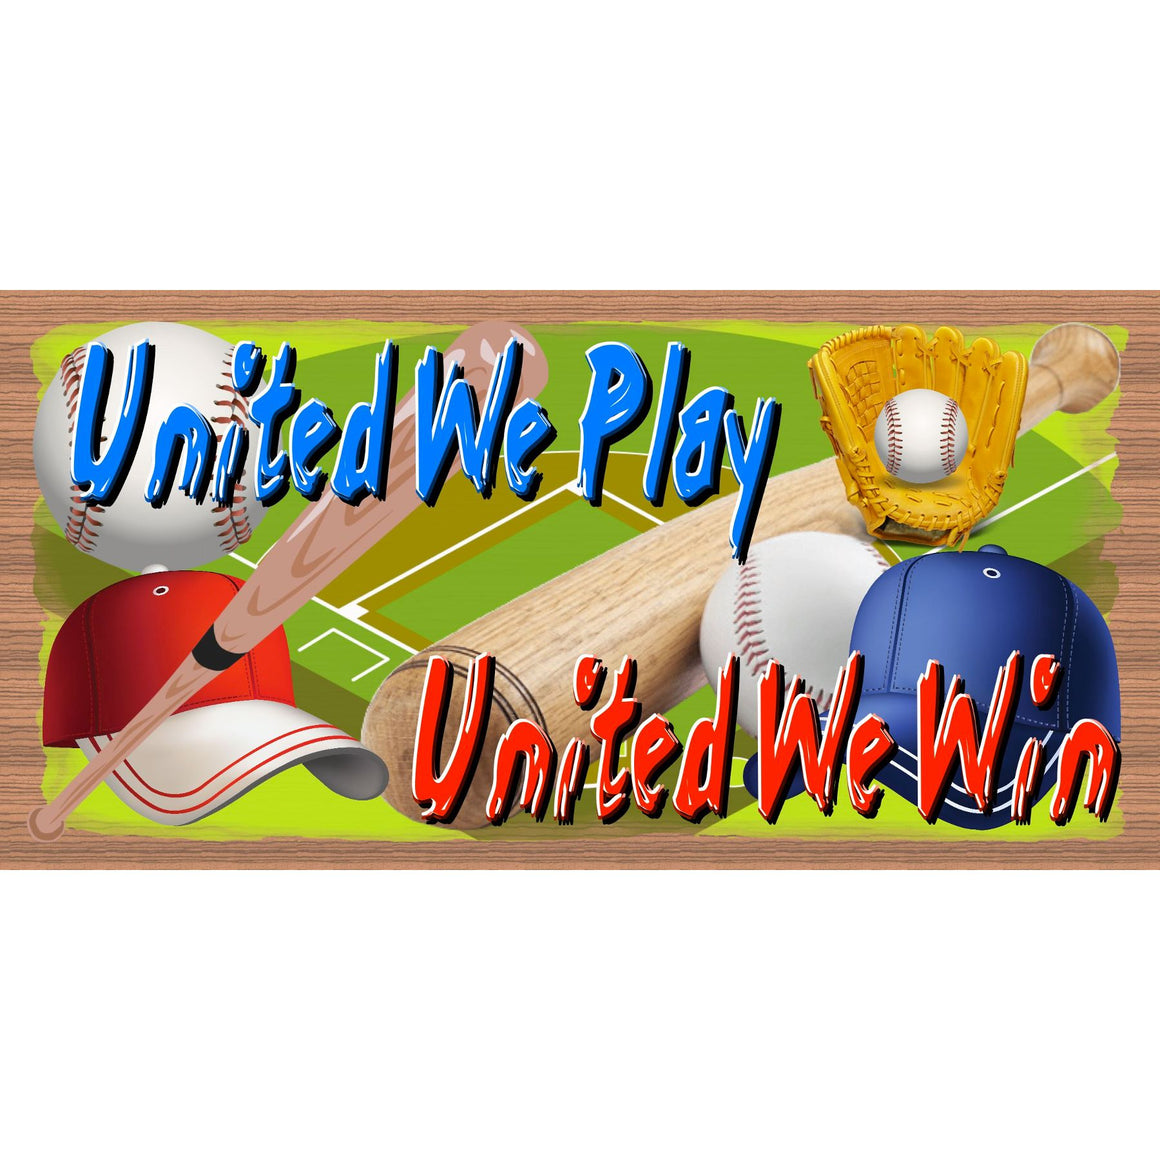 Baseball Wood Signs - United We Play United We Stand - GS 222